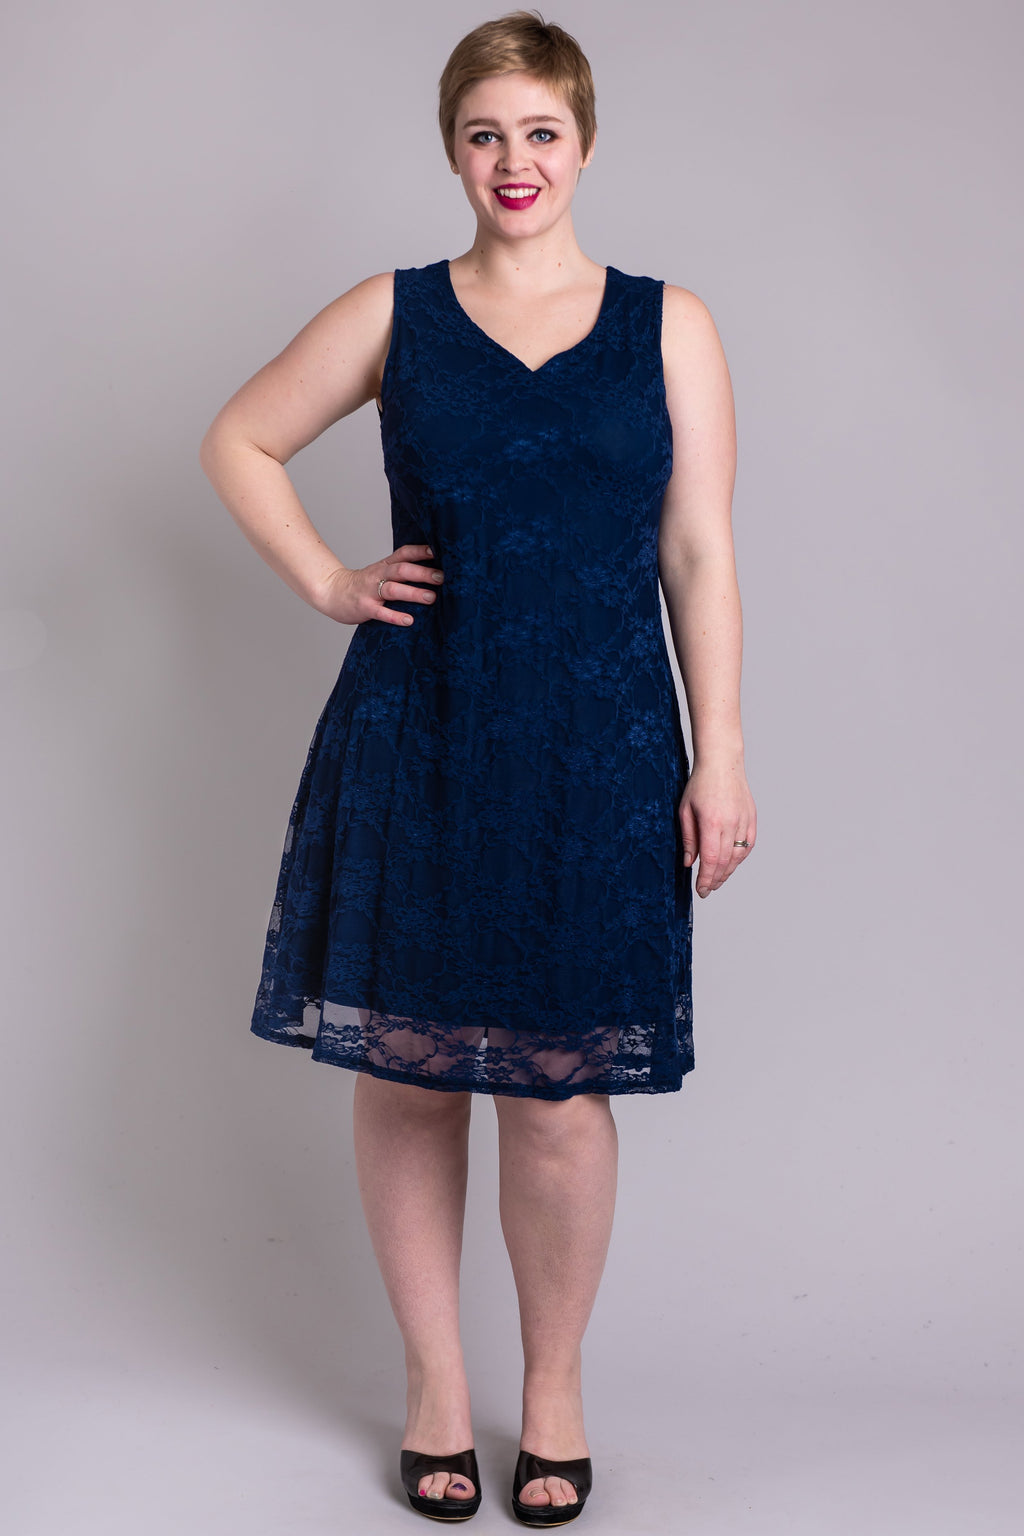 Cosette Dress, Indigo Aster, Bamboo Viscose - Blue Sky Clothing Co